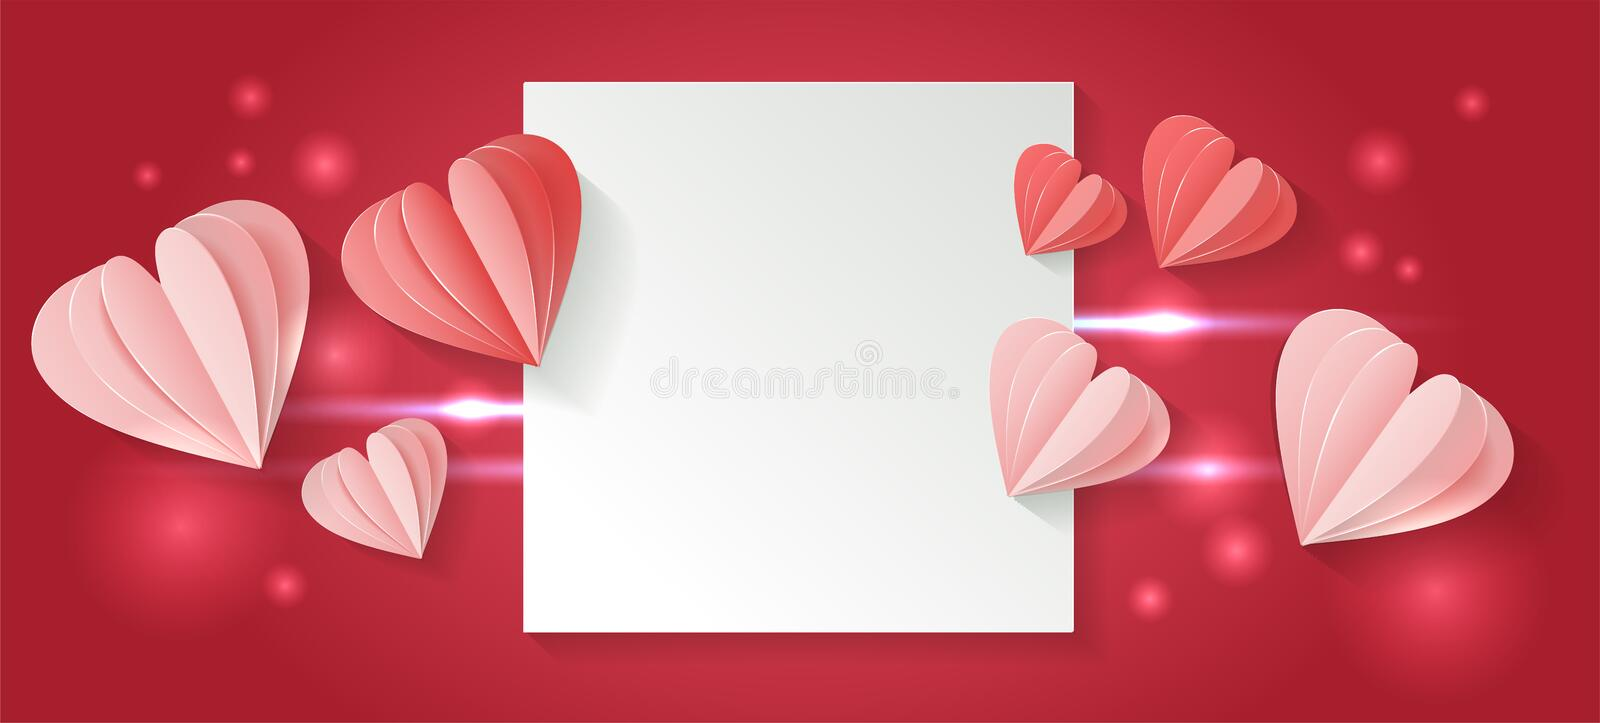 Valentines day horizontal background with paper cut red and pink heart shape hot air balloons pattern. Vector volume illustration stock illustration